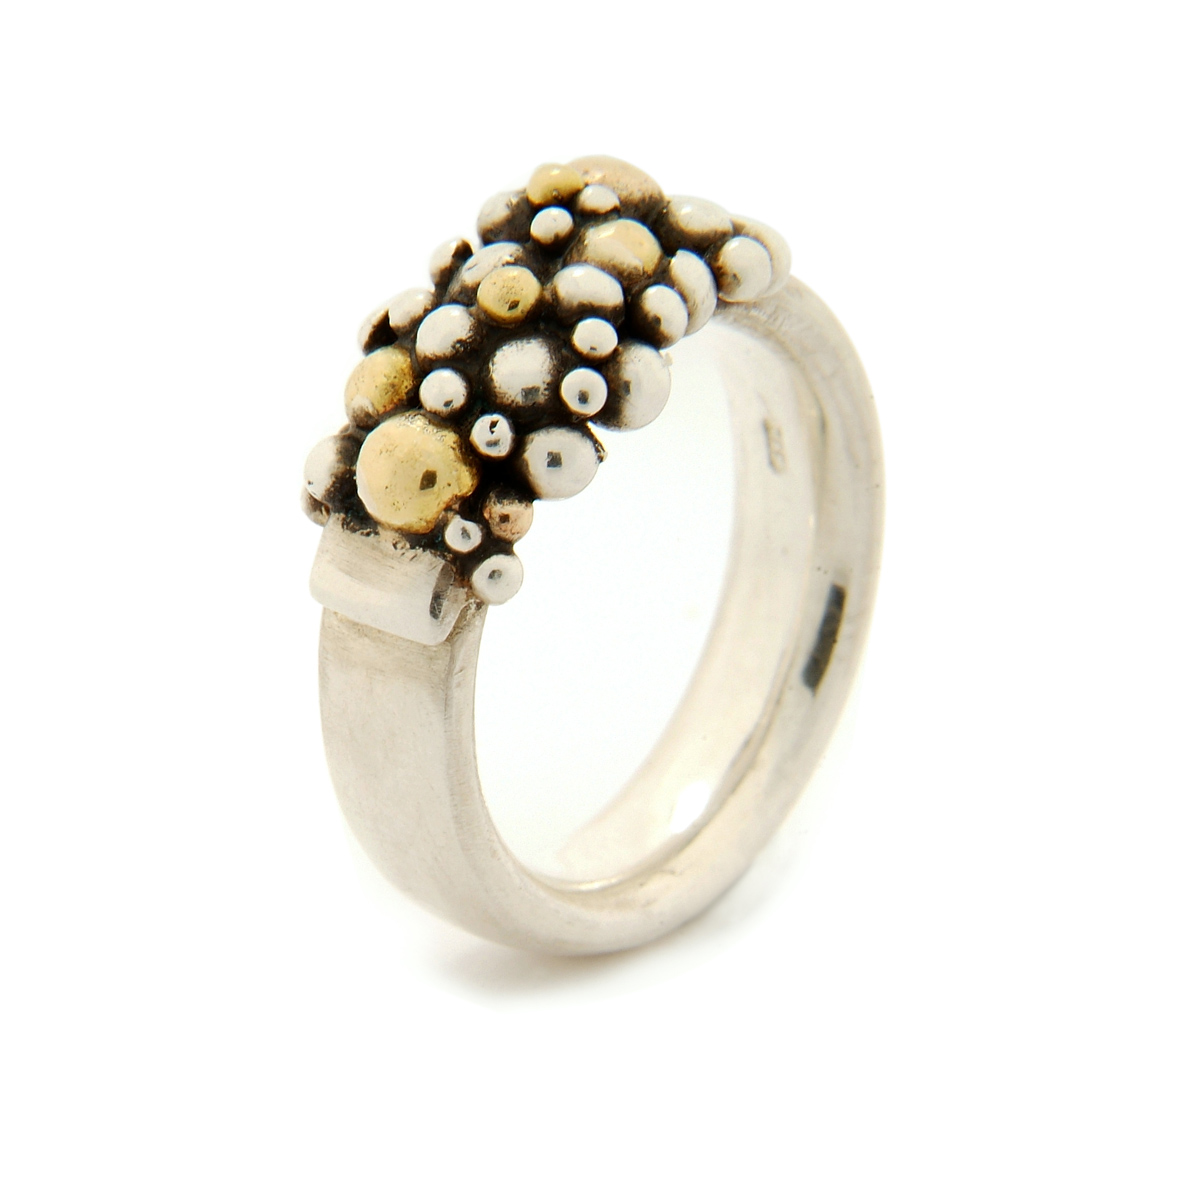 Molecule semi ring silver and 18ct gold